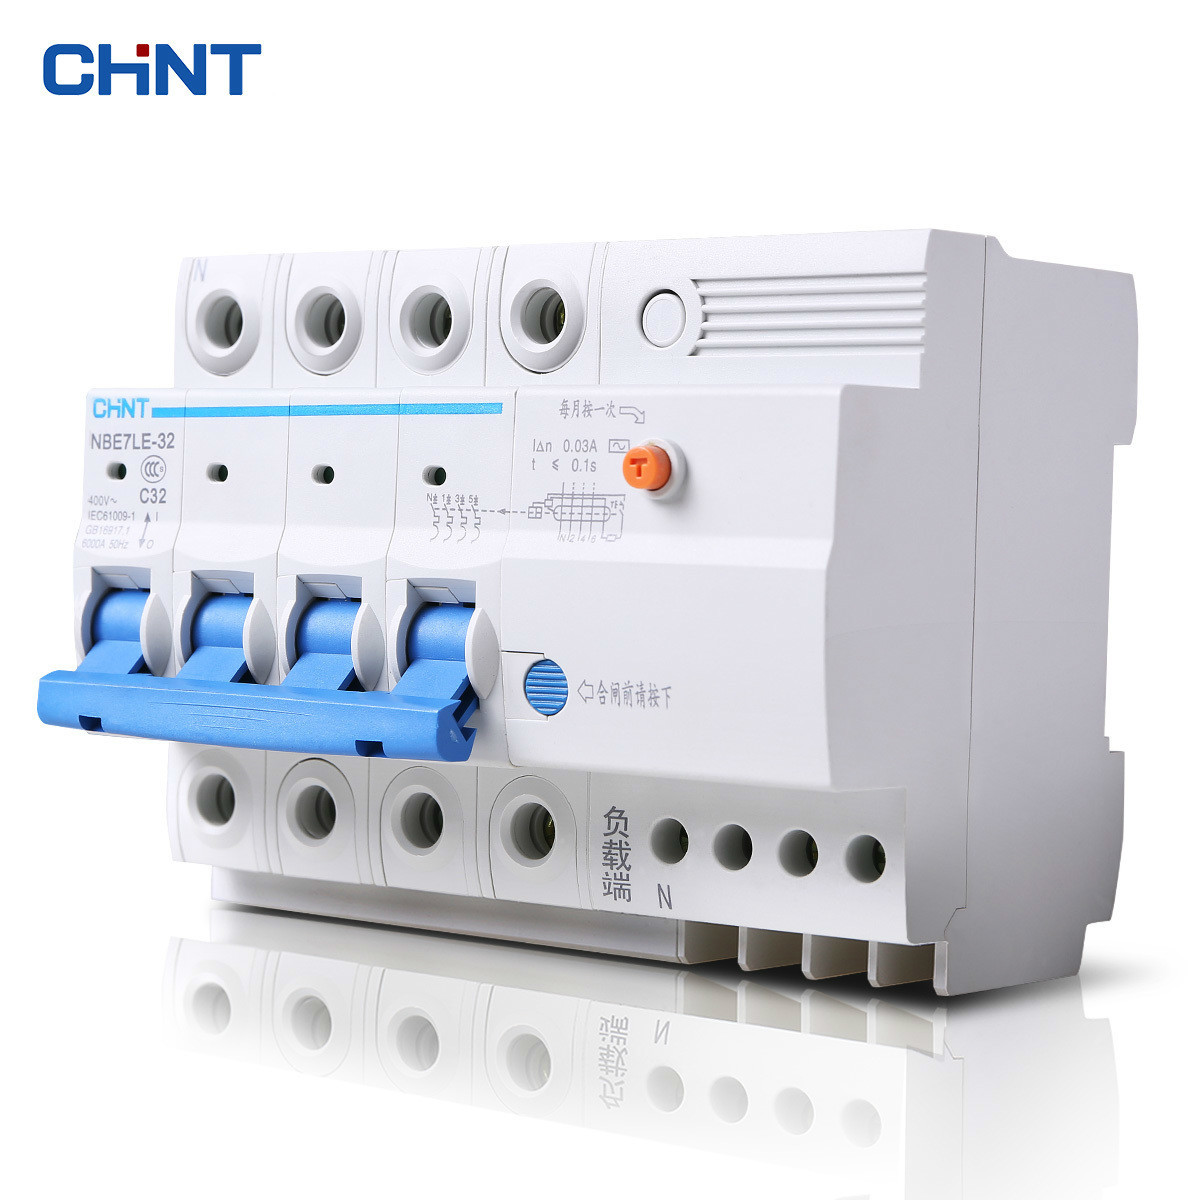 CHNT CHINT Leakage Protection Leakage Circuit Breaker NBE7LE 4P 16A 20A 25A 32A 40A 63A With Leakage Protector Air Switch chnt chint leakage protector nbe7le 3p n 16a 20a 25a 32a 40a 63a small circuit breaker air switch